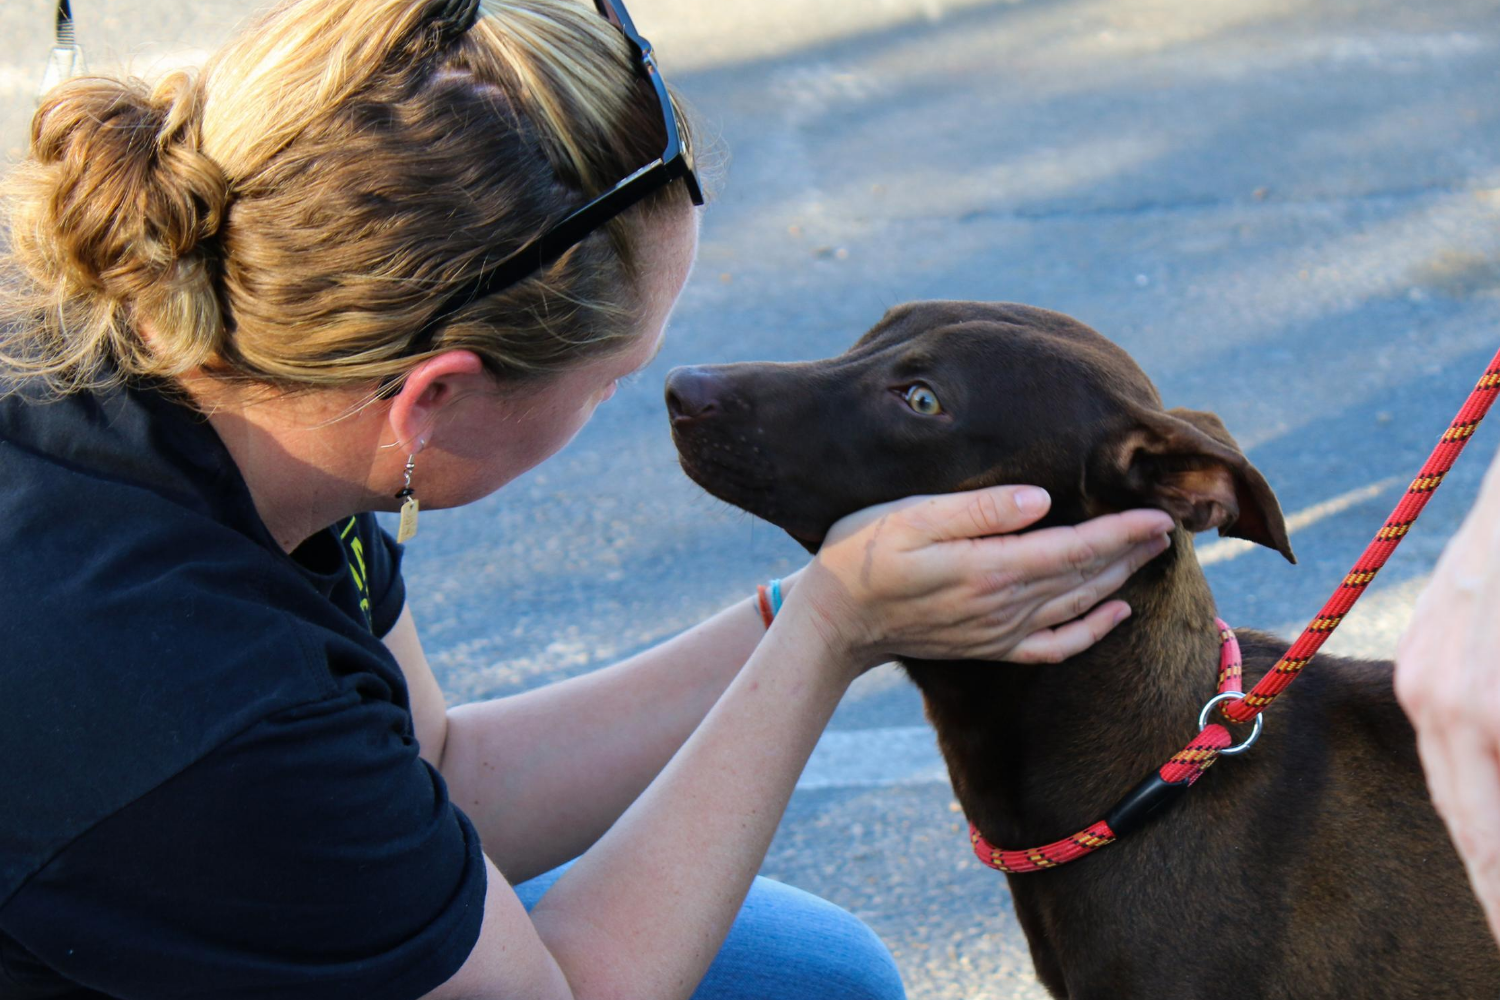 A woman cups her hands around the face of a brown dog